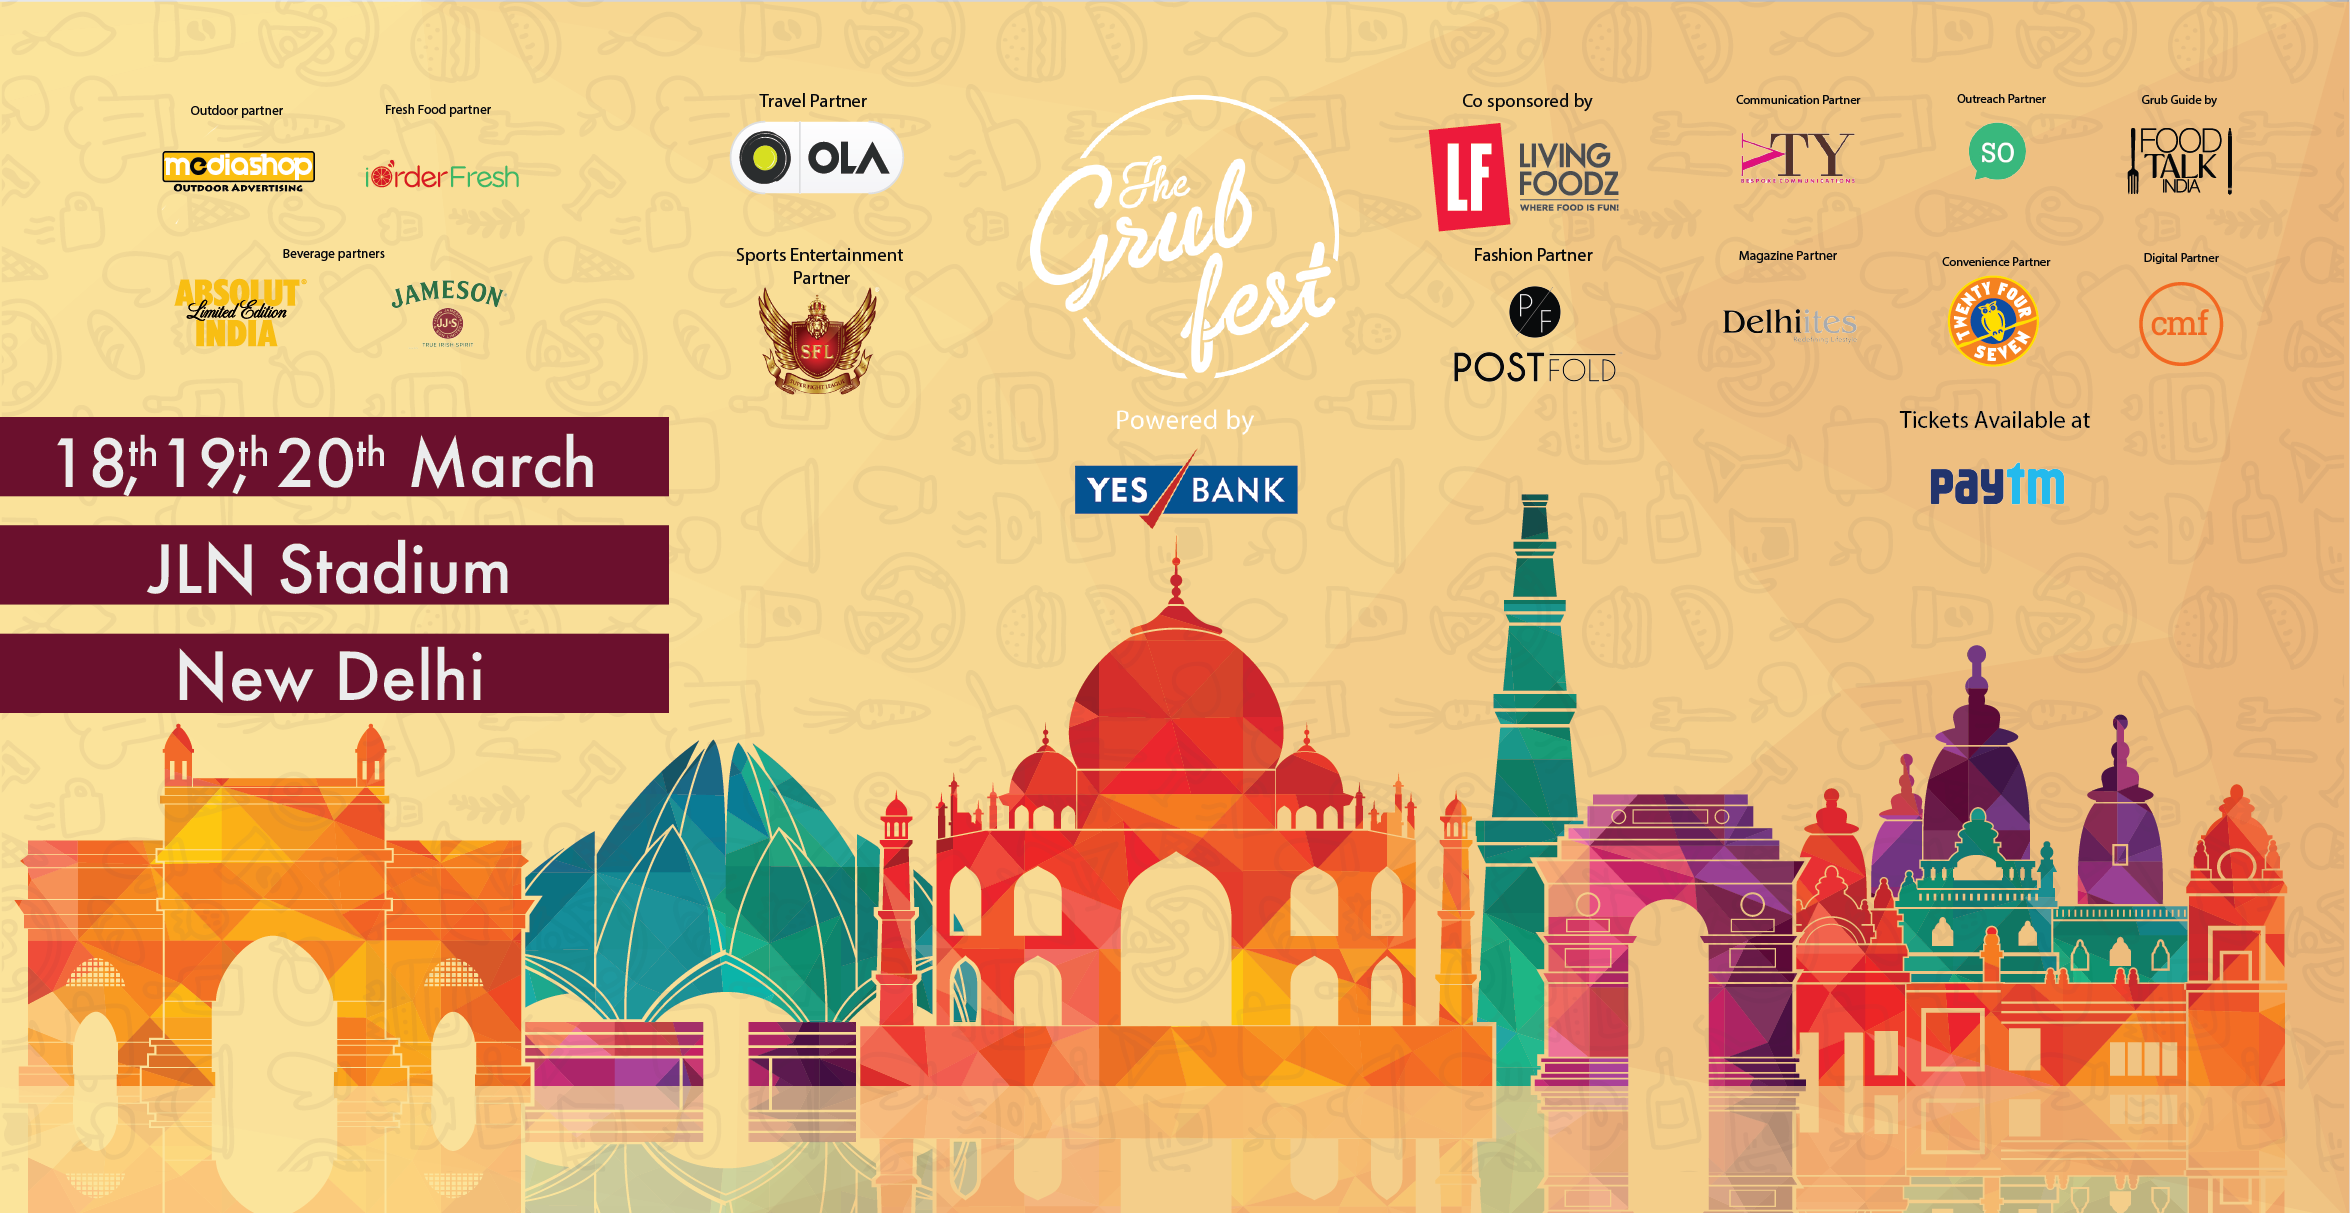 Back to Basecamp – The Grub Fest Delhi